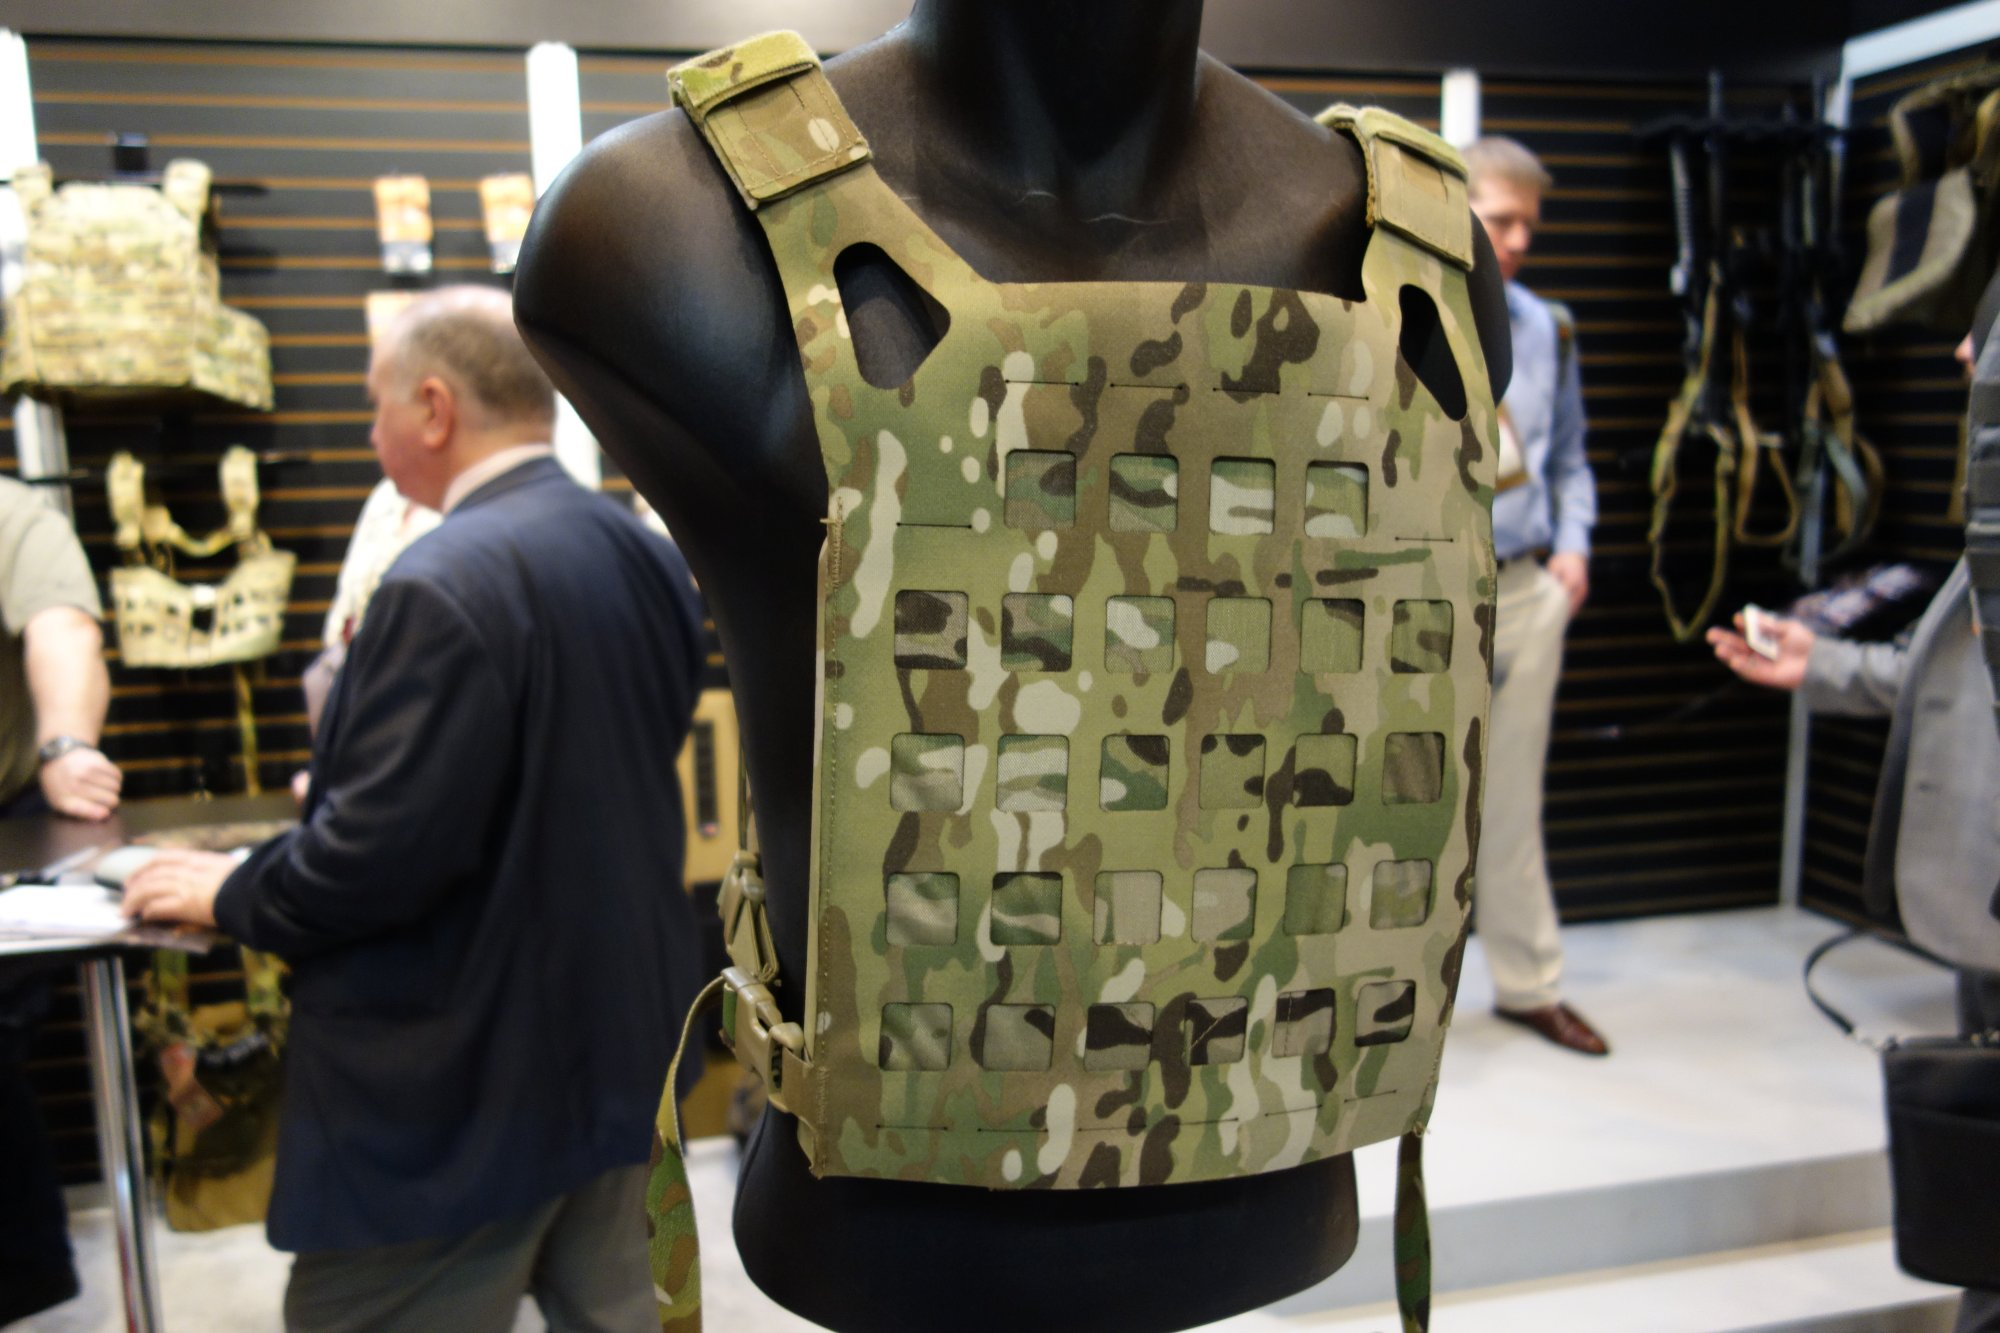 Blue Force Gear BFG PLATEminus Ultra Lightweight Low Profile Low Visibility Tactical Armor Plate Carrier with MOLLEminus and ULTRAcomp Crye MultiCam Camo Pattern at SHOT Show 2013 David Crane DefenseReview.com DR 1 Blue Force Gear (BFG) PLATEminus Ultra Lightweight Low Profile/Low Visibility Tactical Armor Plate Carrier and BELTminus and SPLITminus Battle Belt/Chest Rig/Harness Systems with MOLLEminus Cutaway MOLLE System and ULTRAcomp Laminate: Tactical Body Armor Goes Super Minimalist